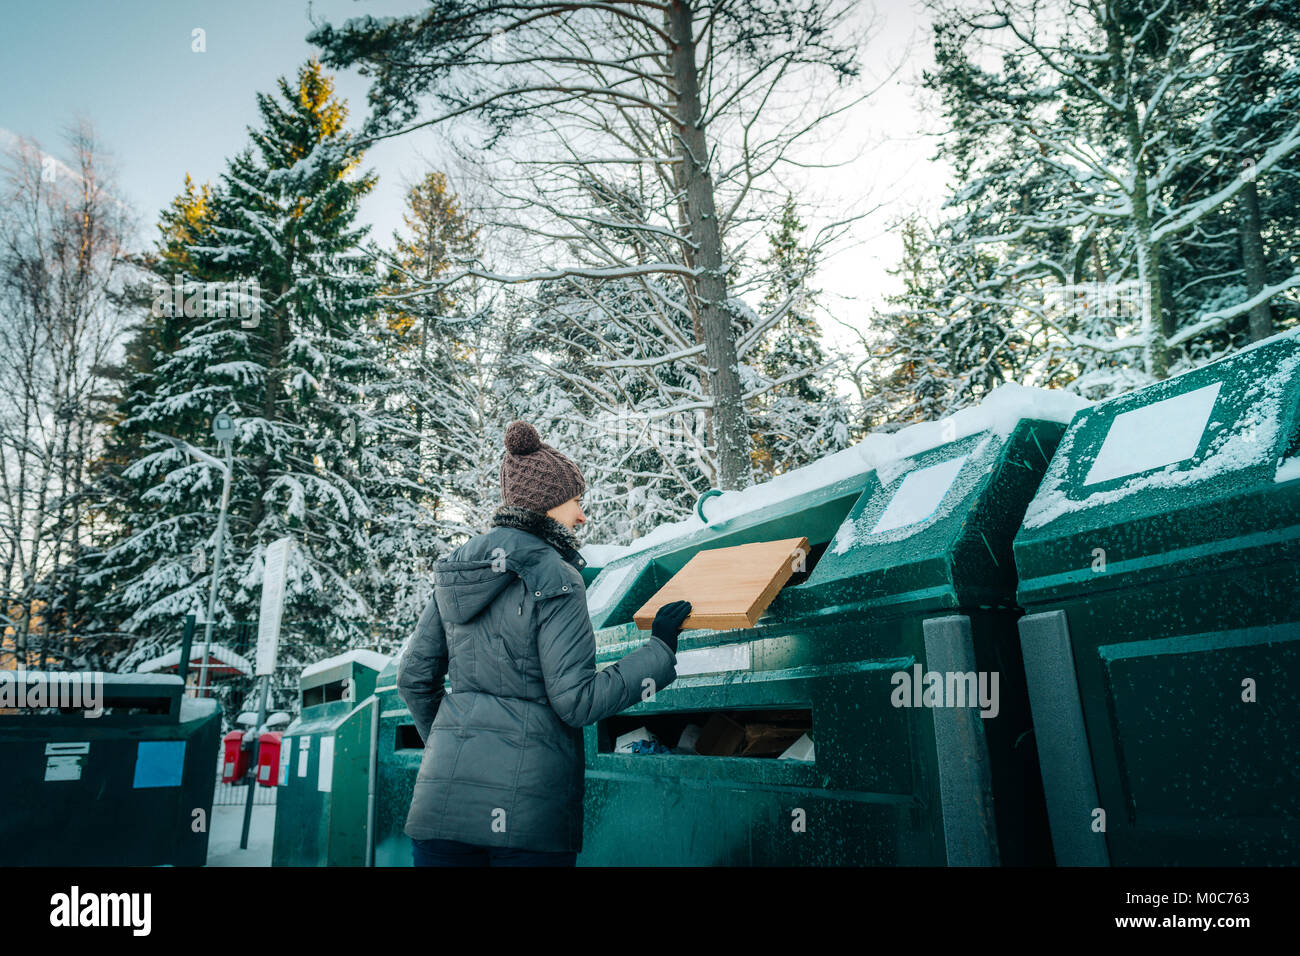 Woman recycling at waste management depo - Stock Image